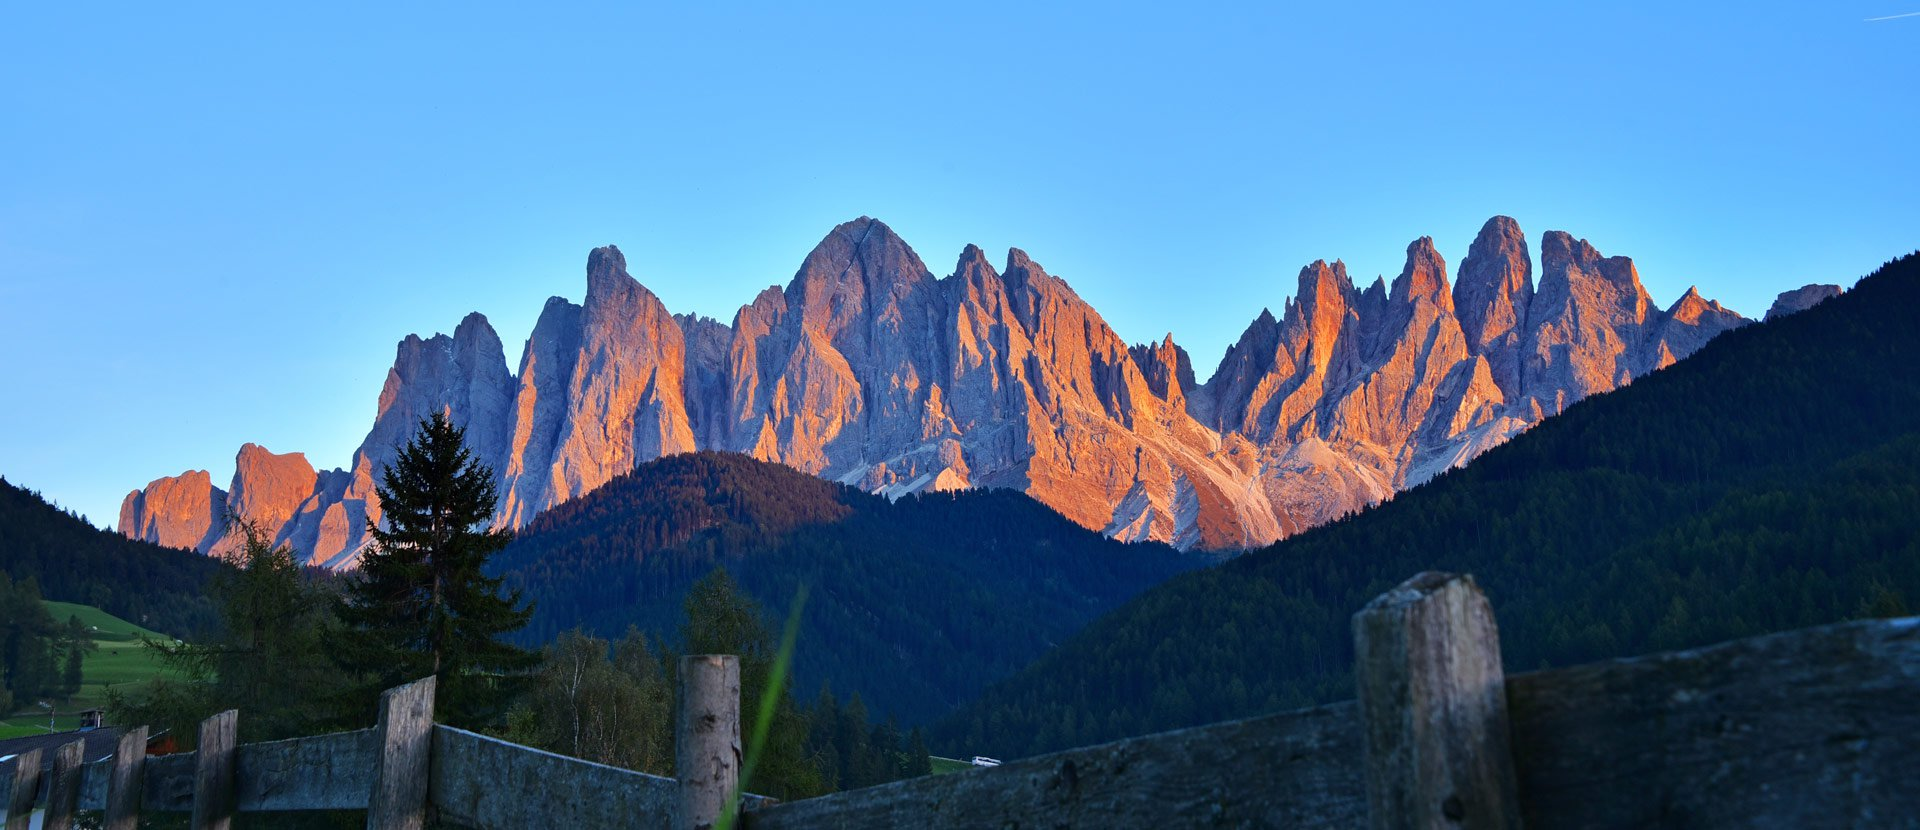 Attractions in South Tyrol › proihof com